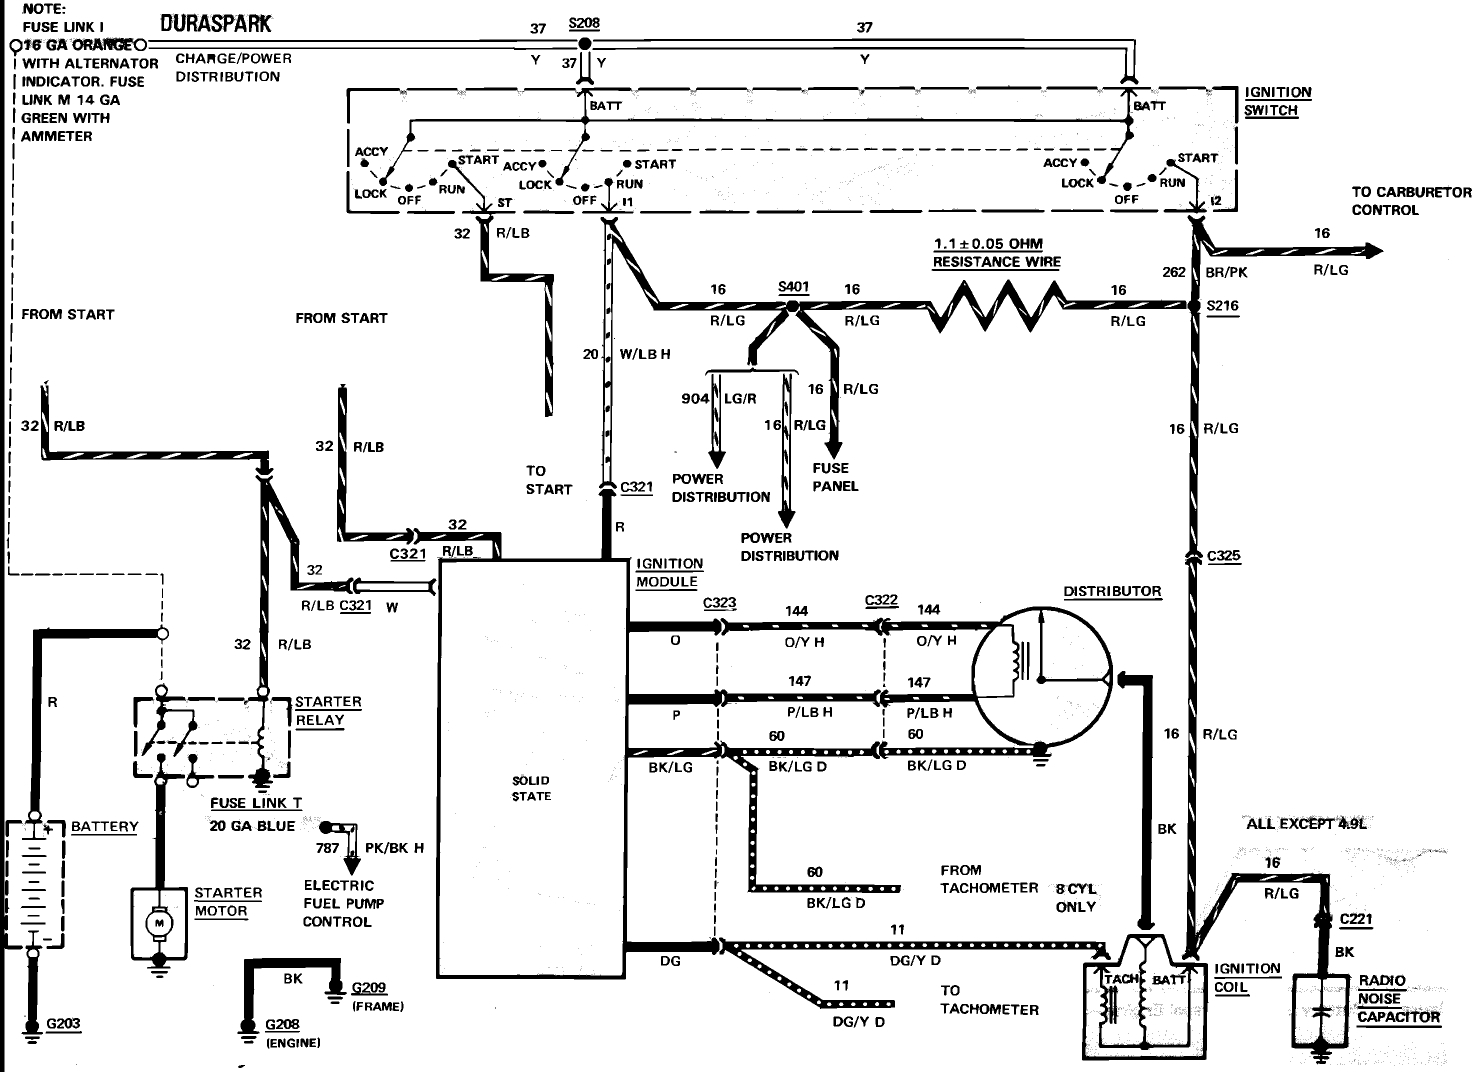 [XOTG_4463]  DIAGRAM] 1990 Ford F 250 Ignition Wiring Diagram FULL Version HD Quality Wiring  Diagram - PLANDIAGRAMS.ARTEMISMAIL.FR | 1990 Ford F 150 Wiring Harness Diagram |  | Diagram Database